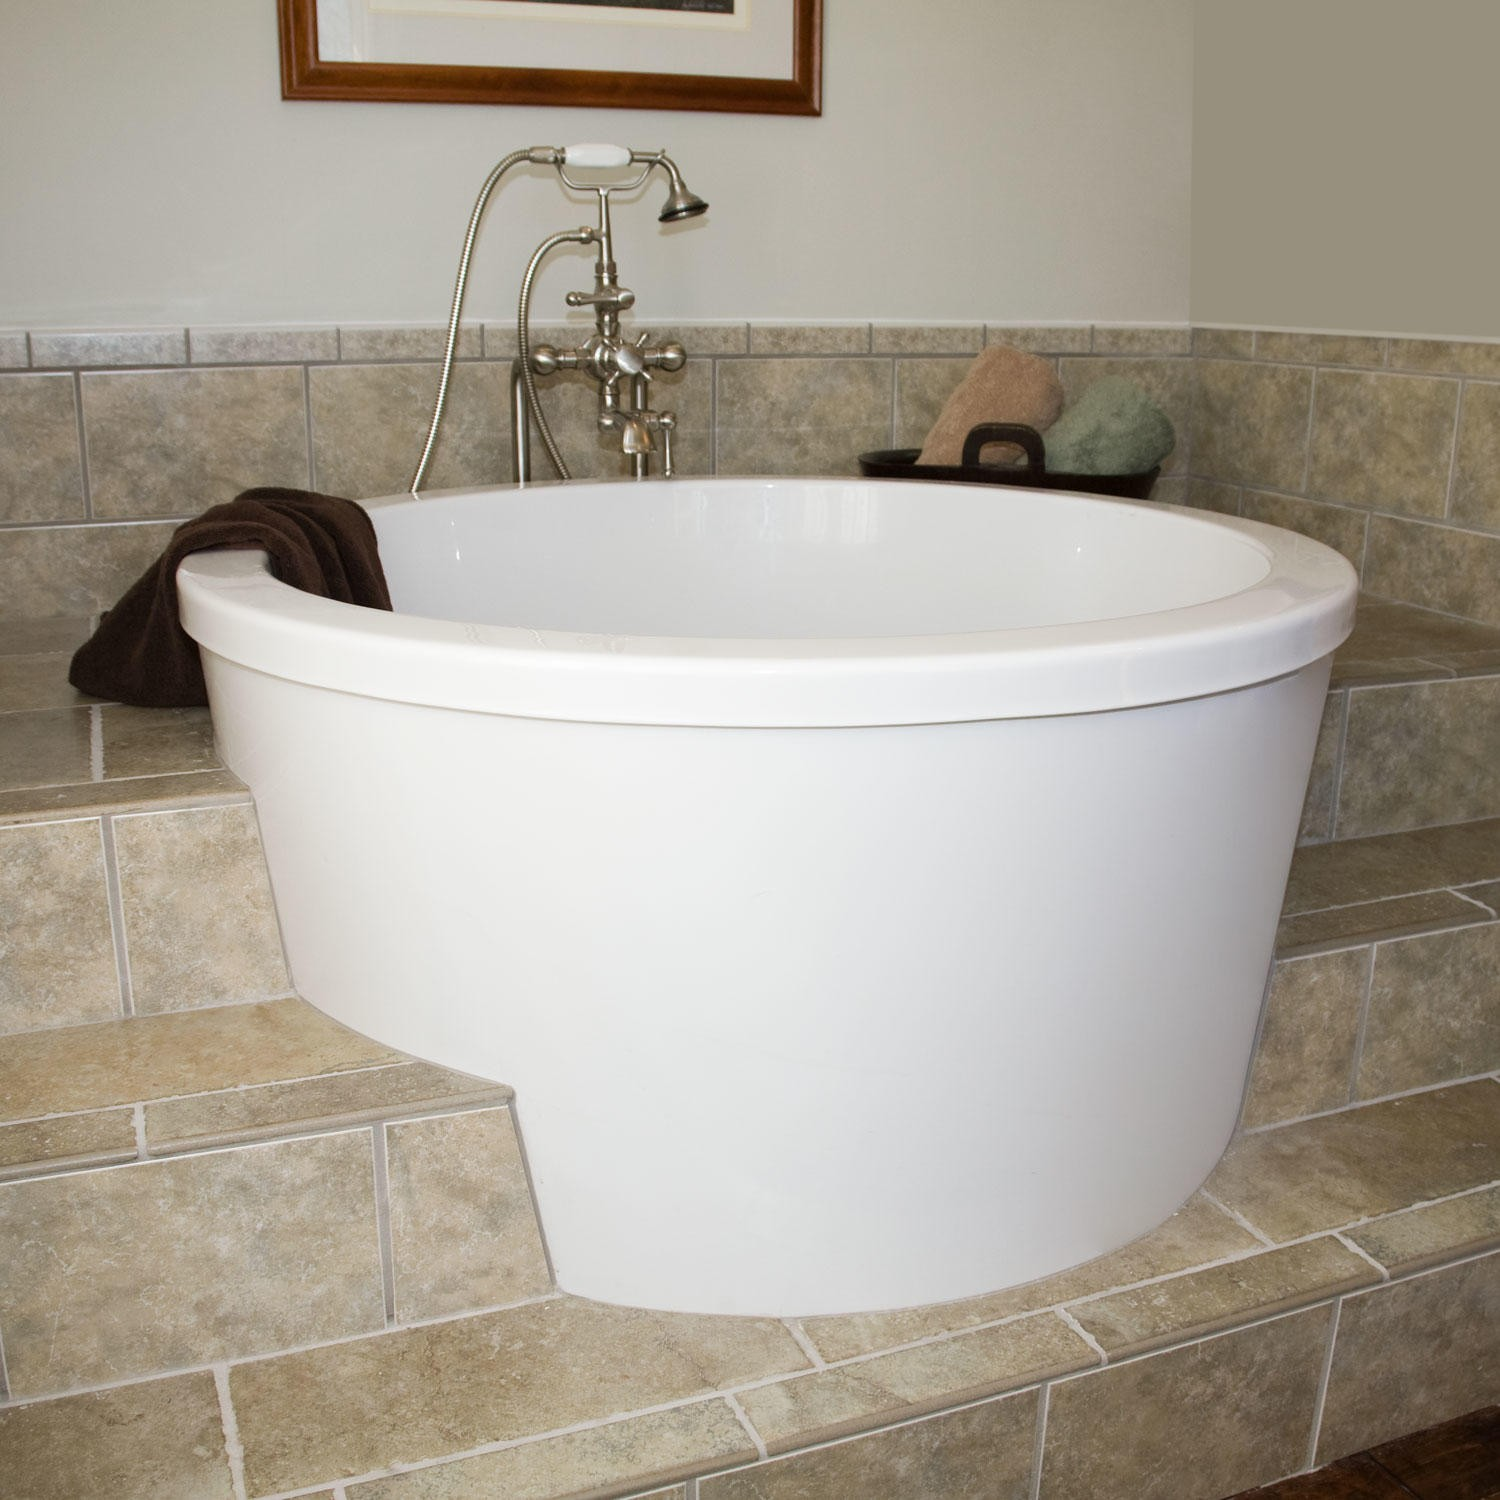 Japanese Soaker Tub For Small Bathroom